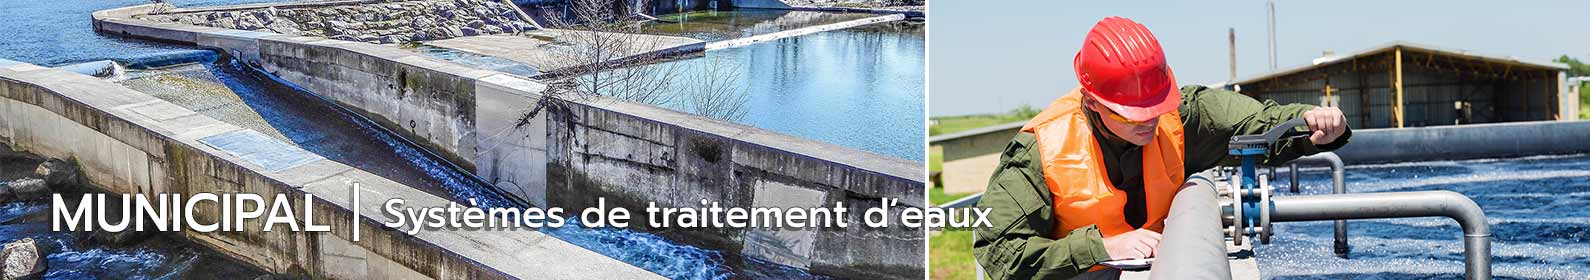 applications-de-traitement-de-l-eau-par-osmose-inverse-municipal.jpg